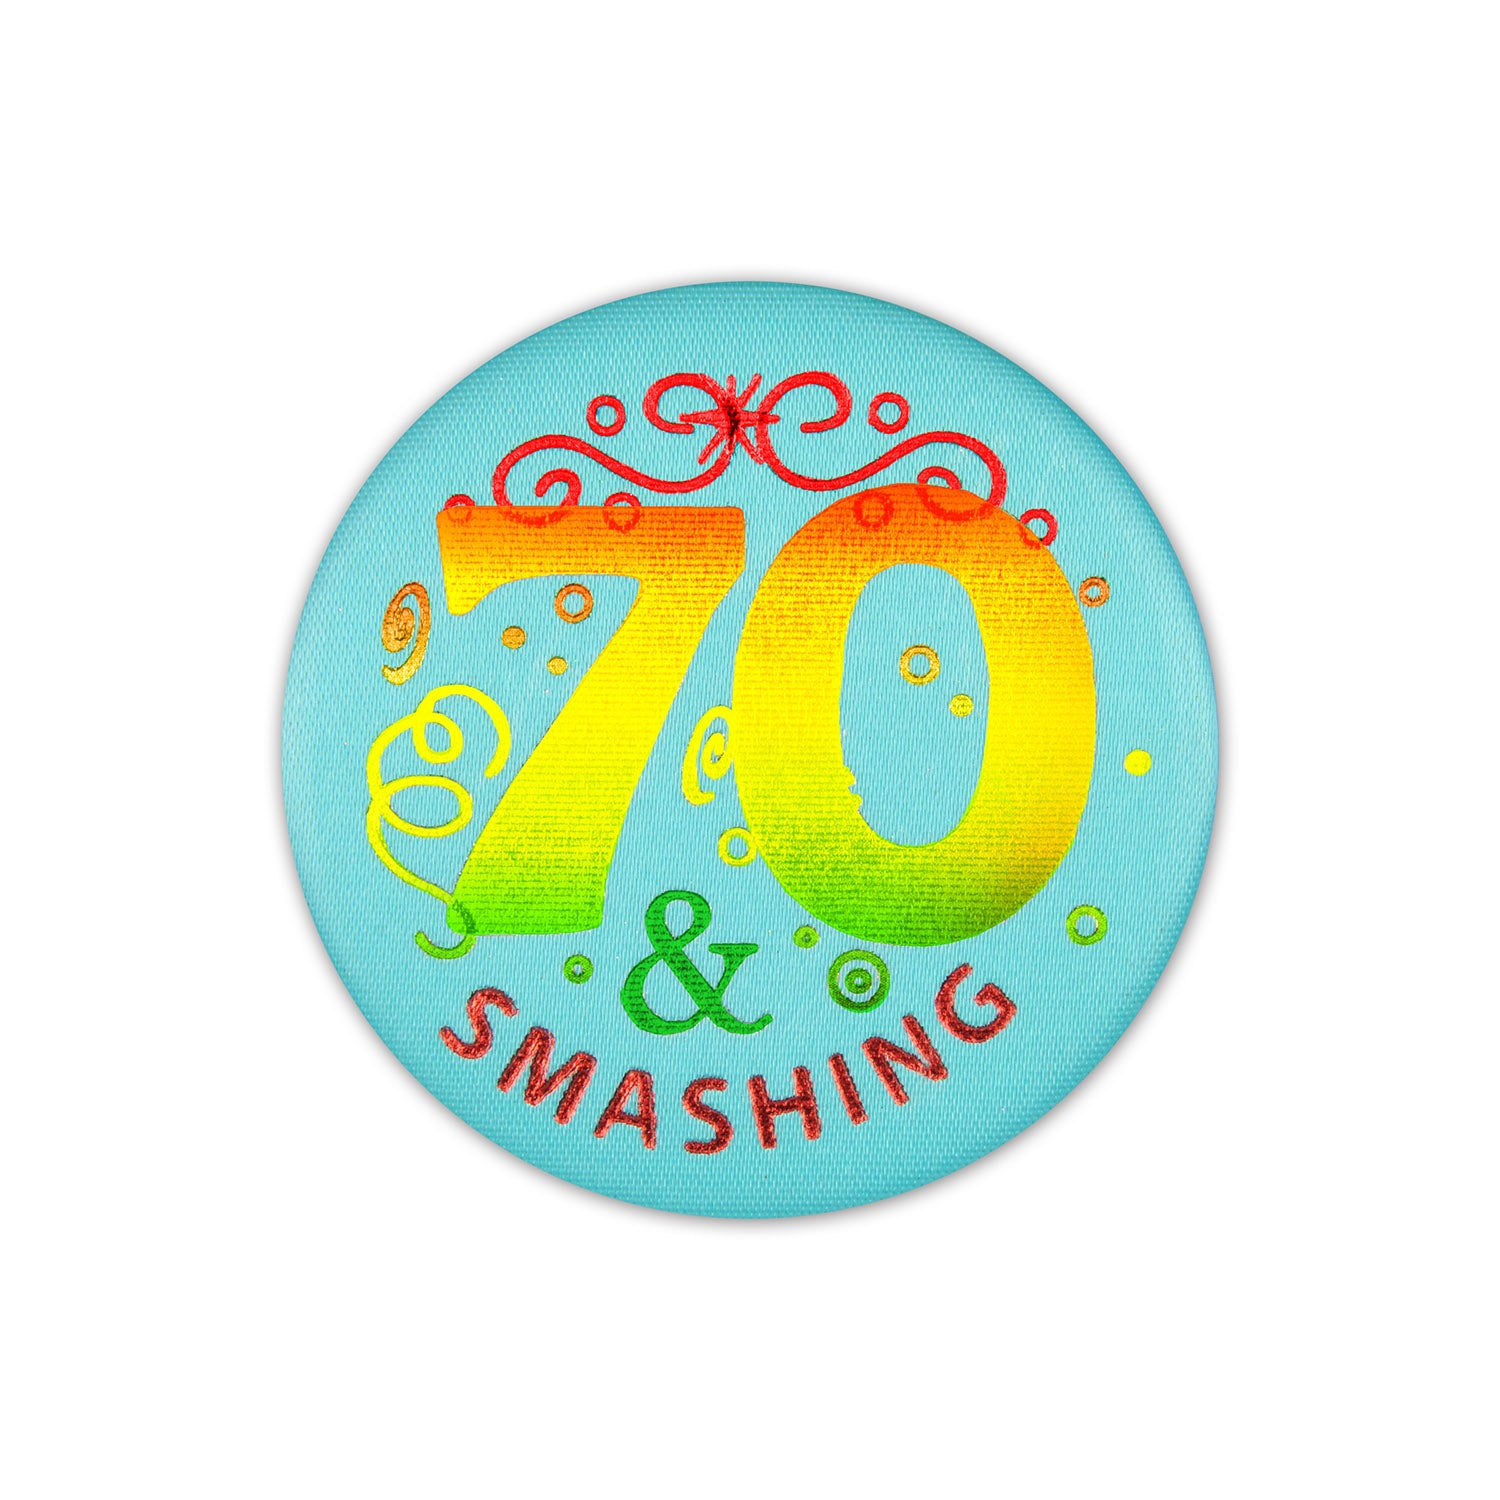 70 & Smashing Satin Button by Beistle - 70th Birthday Party Decorations